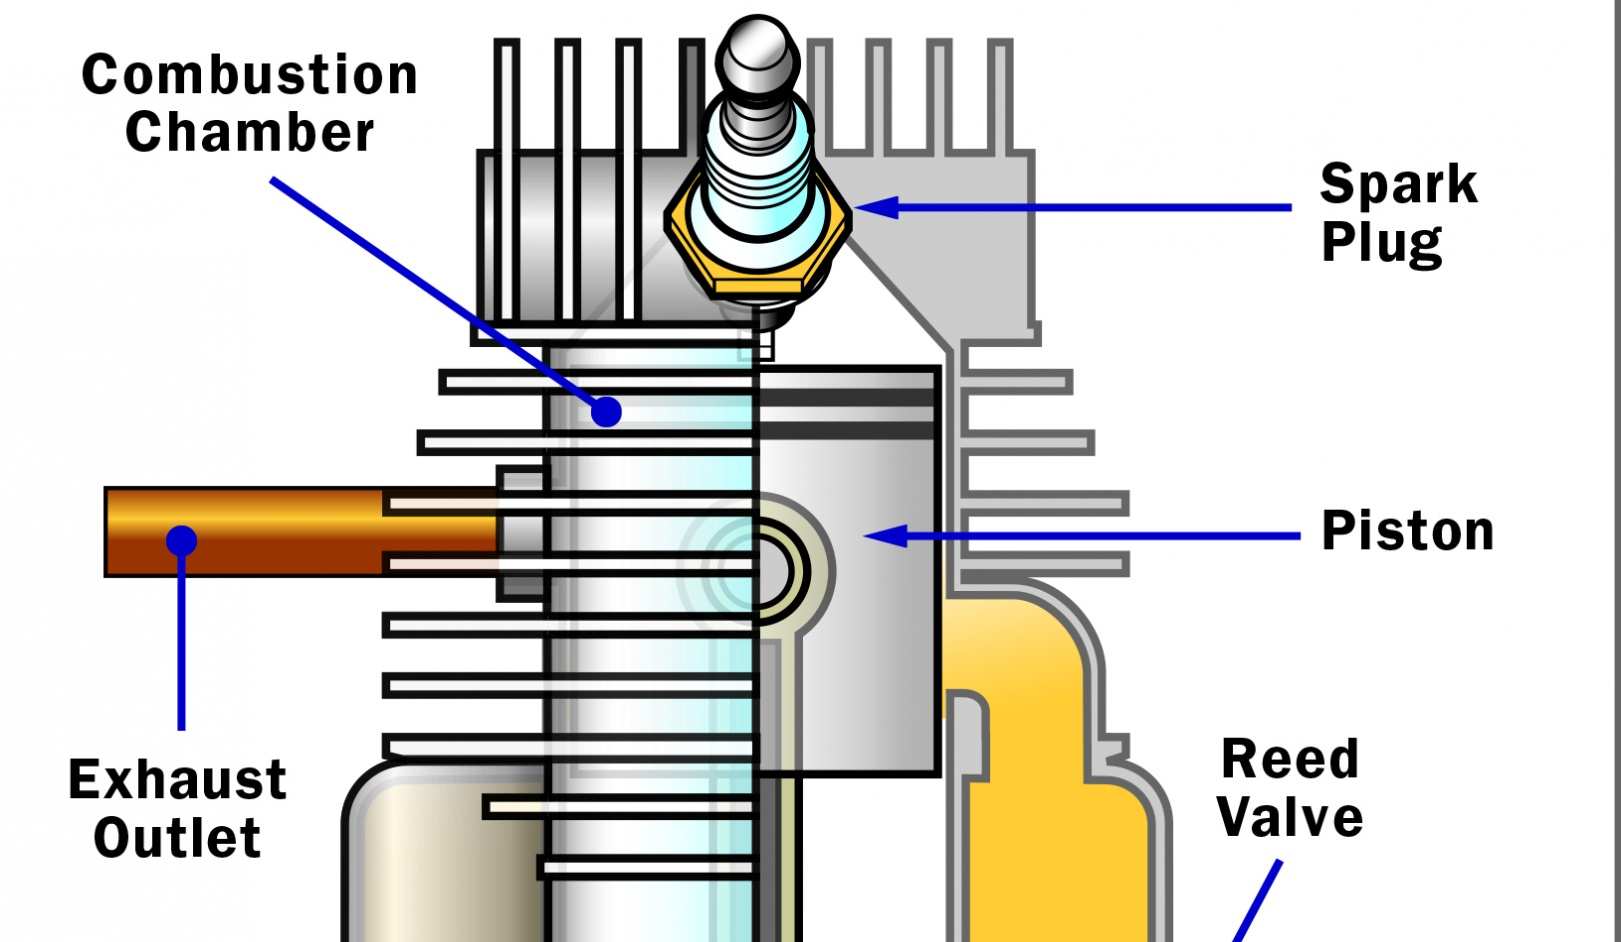 Wondrous Two Stroke Basics How Two Stroke Engines Work Howstuffworks Wiring Cloud Eachirenstrafr09Org